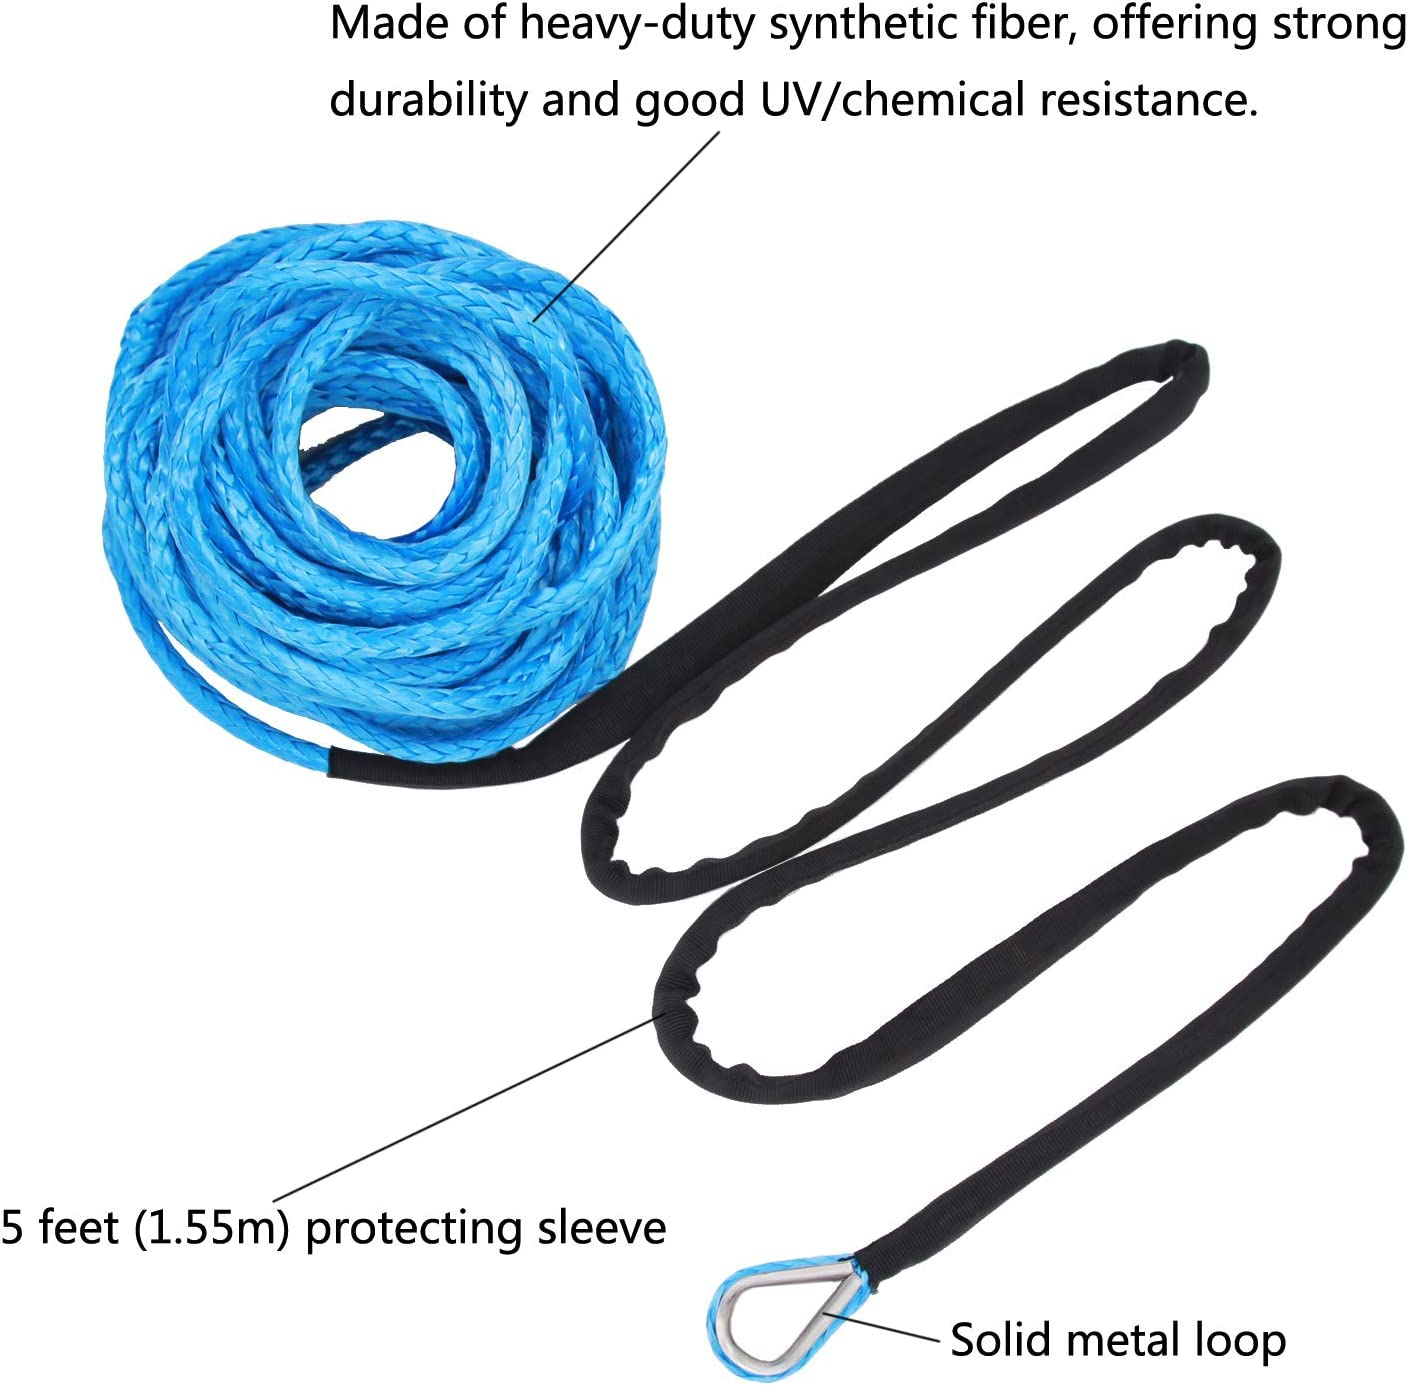 Ucreative 3//16 x 50 7000LBs Synthetic Winch Line Cable Rope with Black Protecing Sleeve for ATV UTV Blue